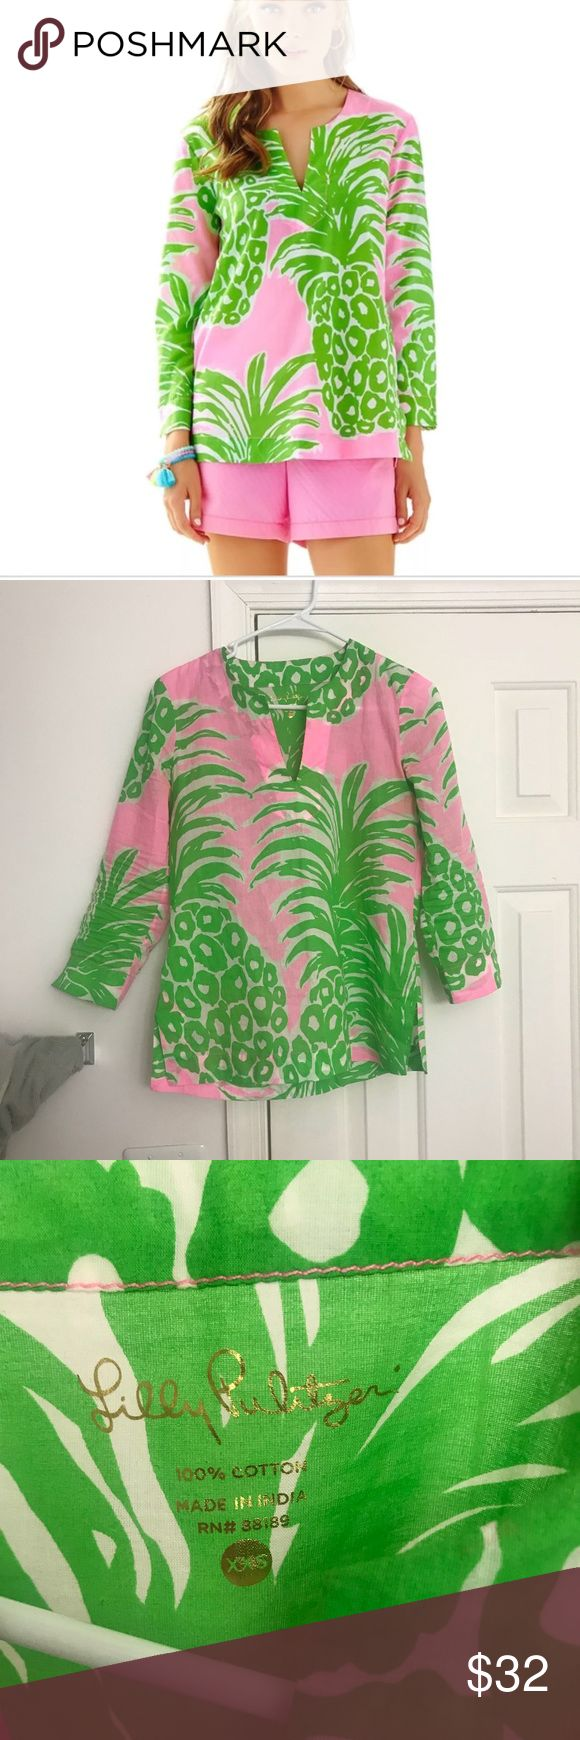 Lilly Pulitzer flamenco pattern tunic style top! Lilly Pulitzer flamenco print tunic style top! Size xxs but could fit up to a small imo depending on how loose/form fitting you want it! Lightweight and very airy! Beautiful pattern! Worn once after purchased for about an hour and I decided it was too tight on my forearms for my liking. From a smoke free and pet free home! Open to trades! Lilly Pulitzer Tops Blouses